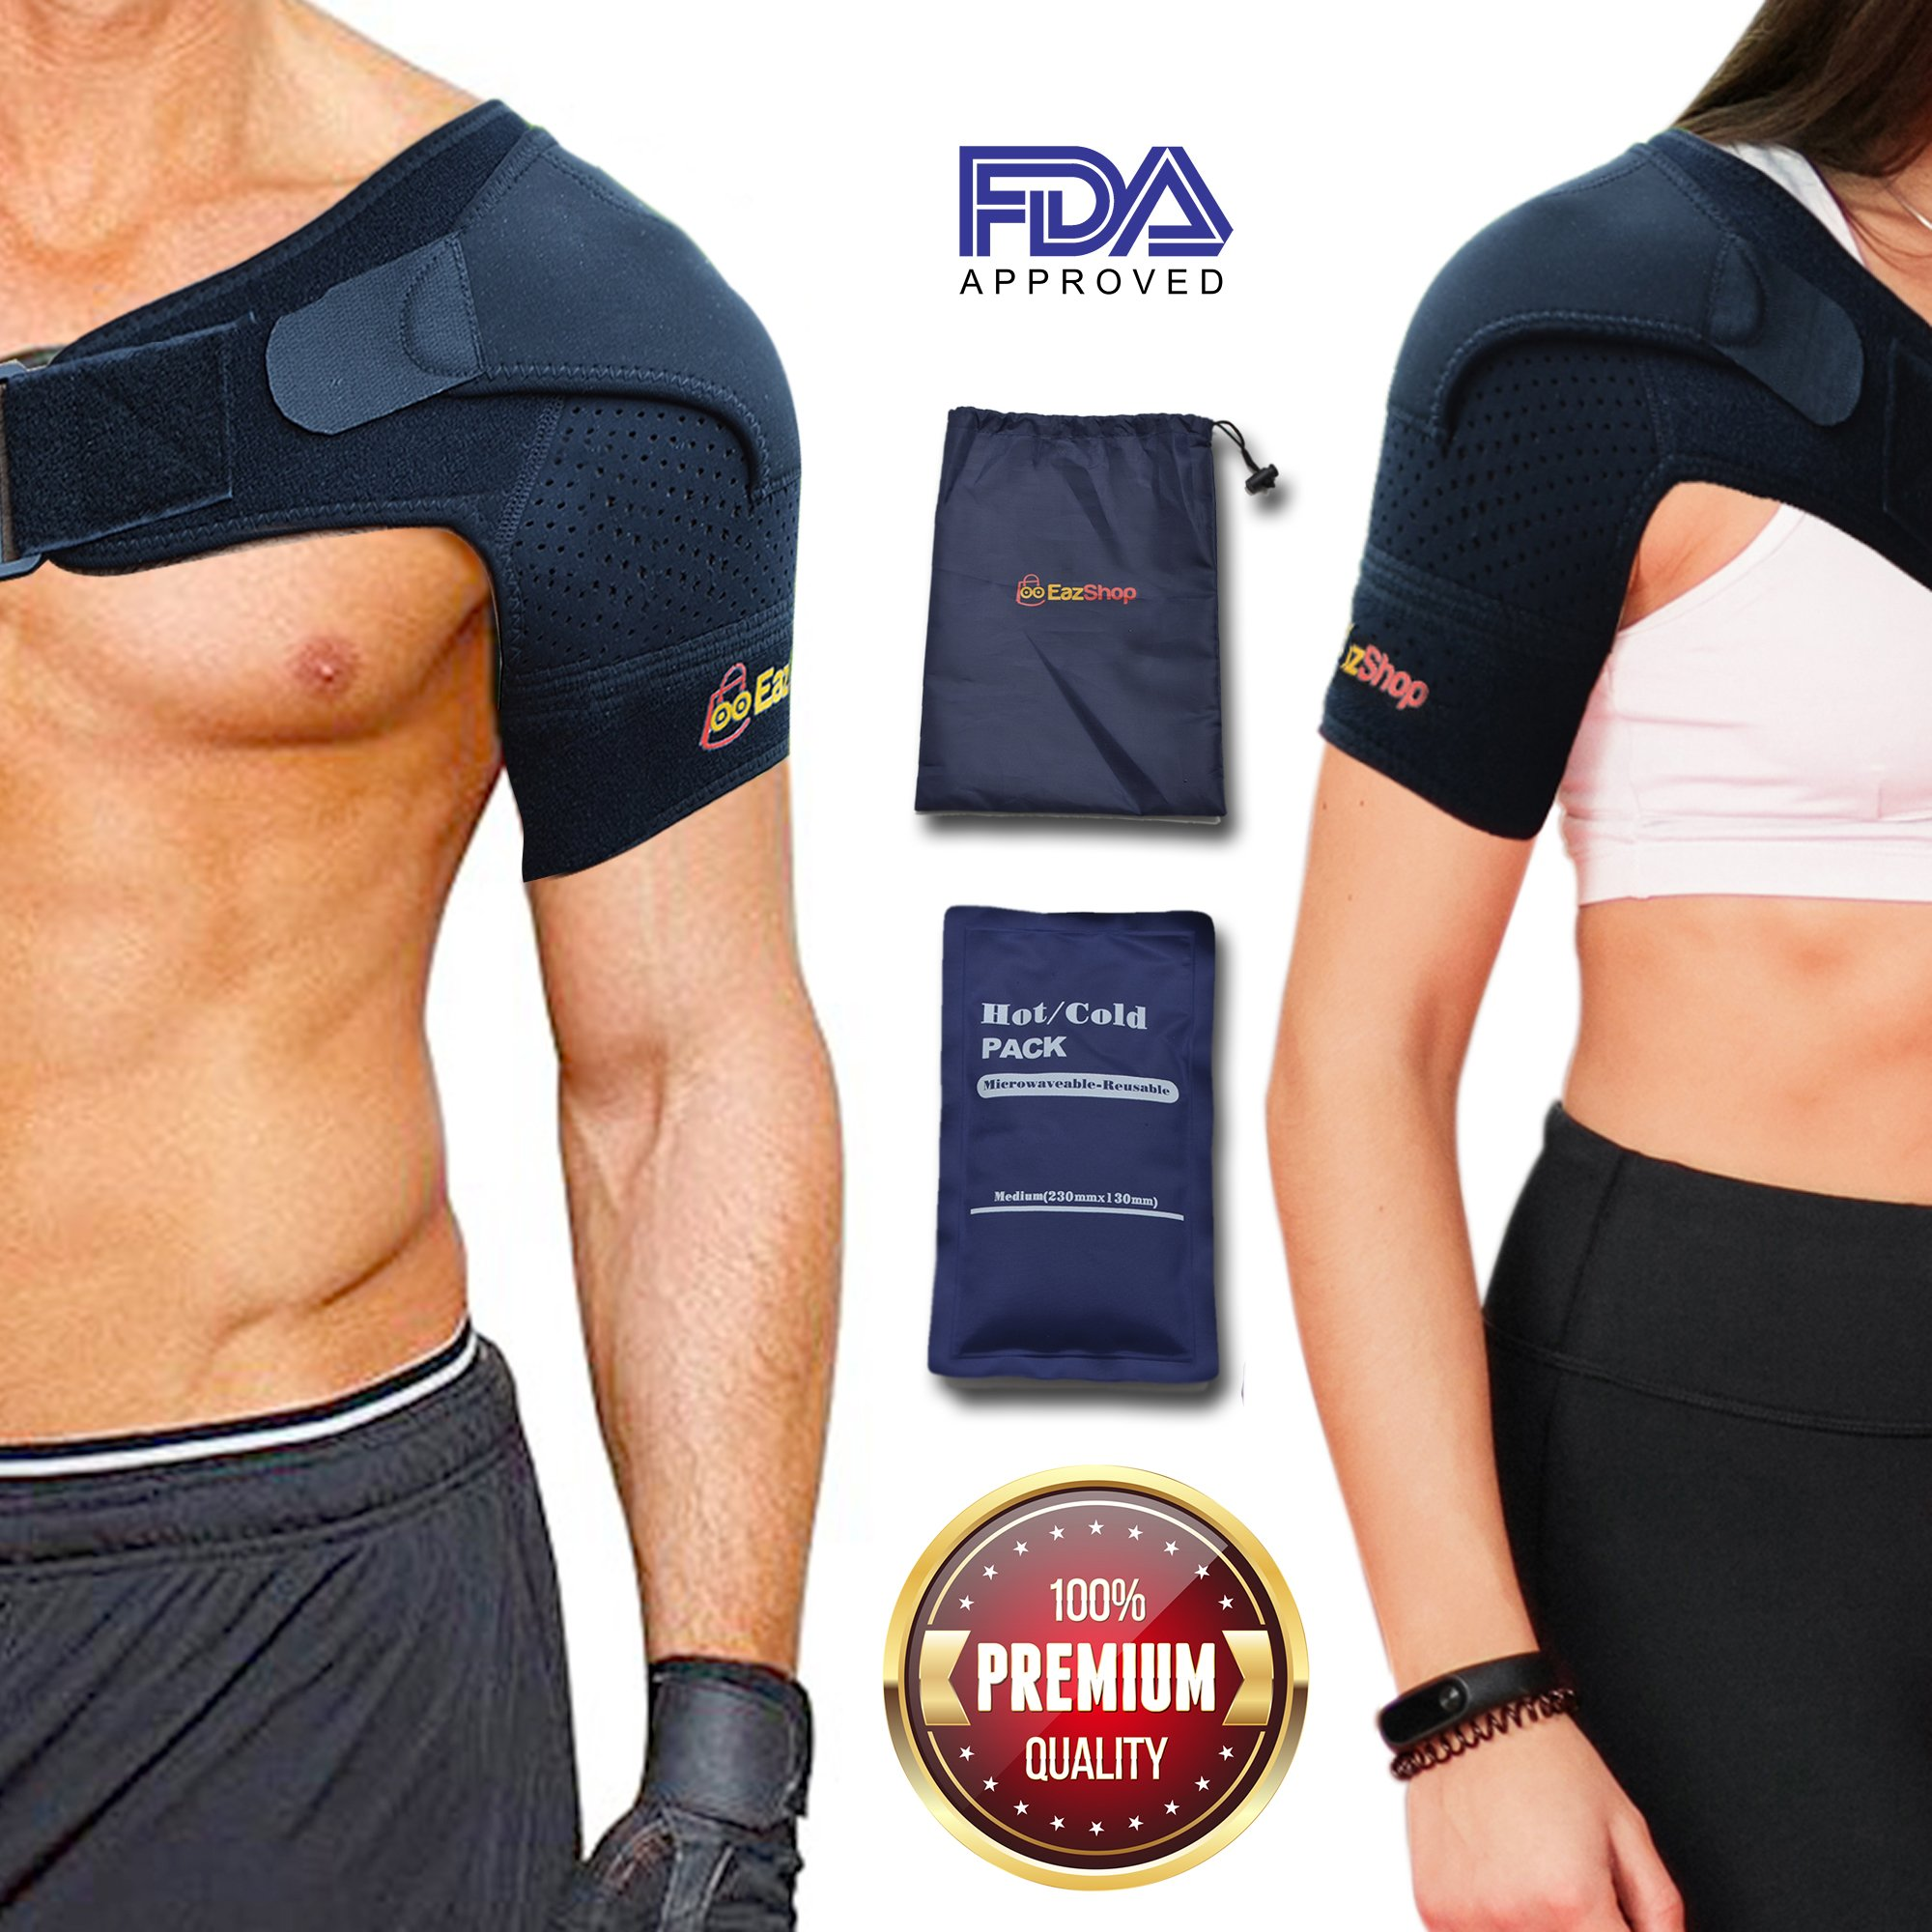 Adjustable Shoulder Brace With Pressure Pads for Men & Women + Hot Cold Reusable Pack + Bag | Compression Strap Sleeve, Neoprene Support for Rotator Cuff, Dislocated AC Joint, Frozen Pain, Tendinitis